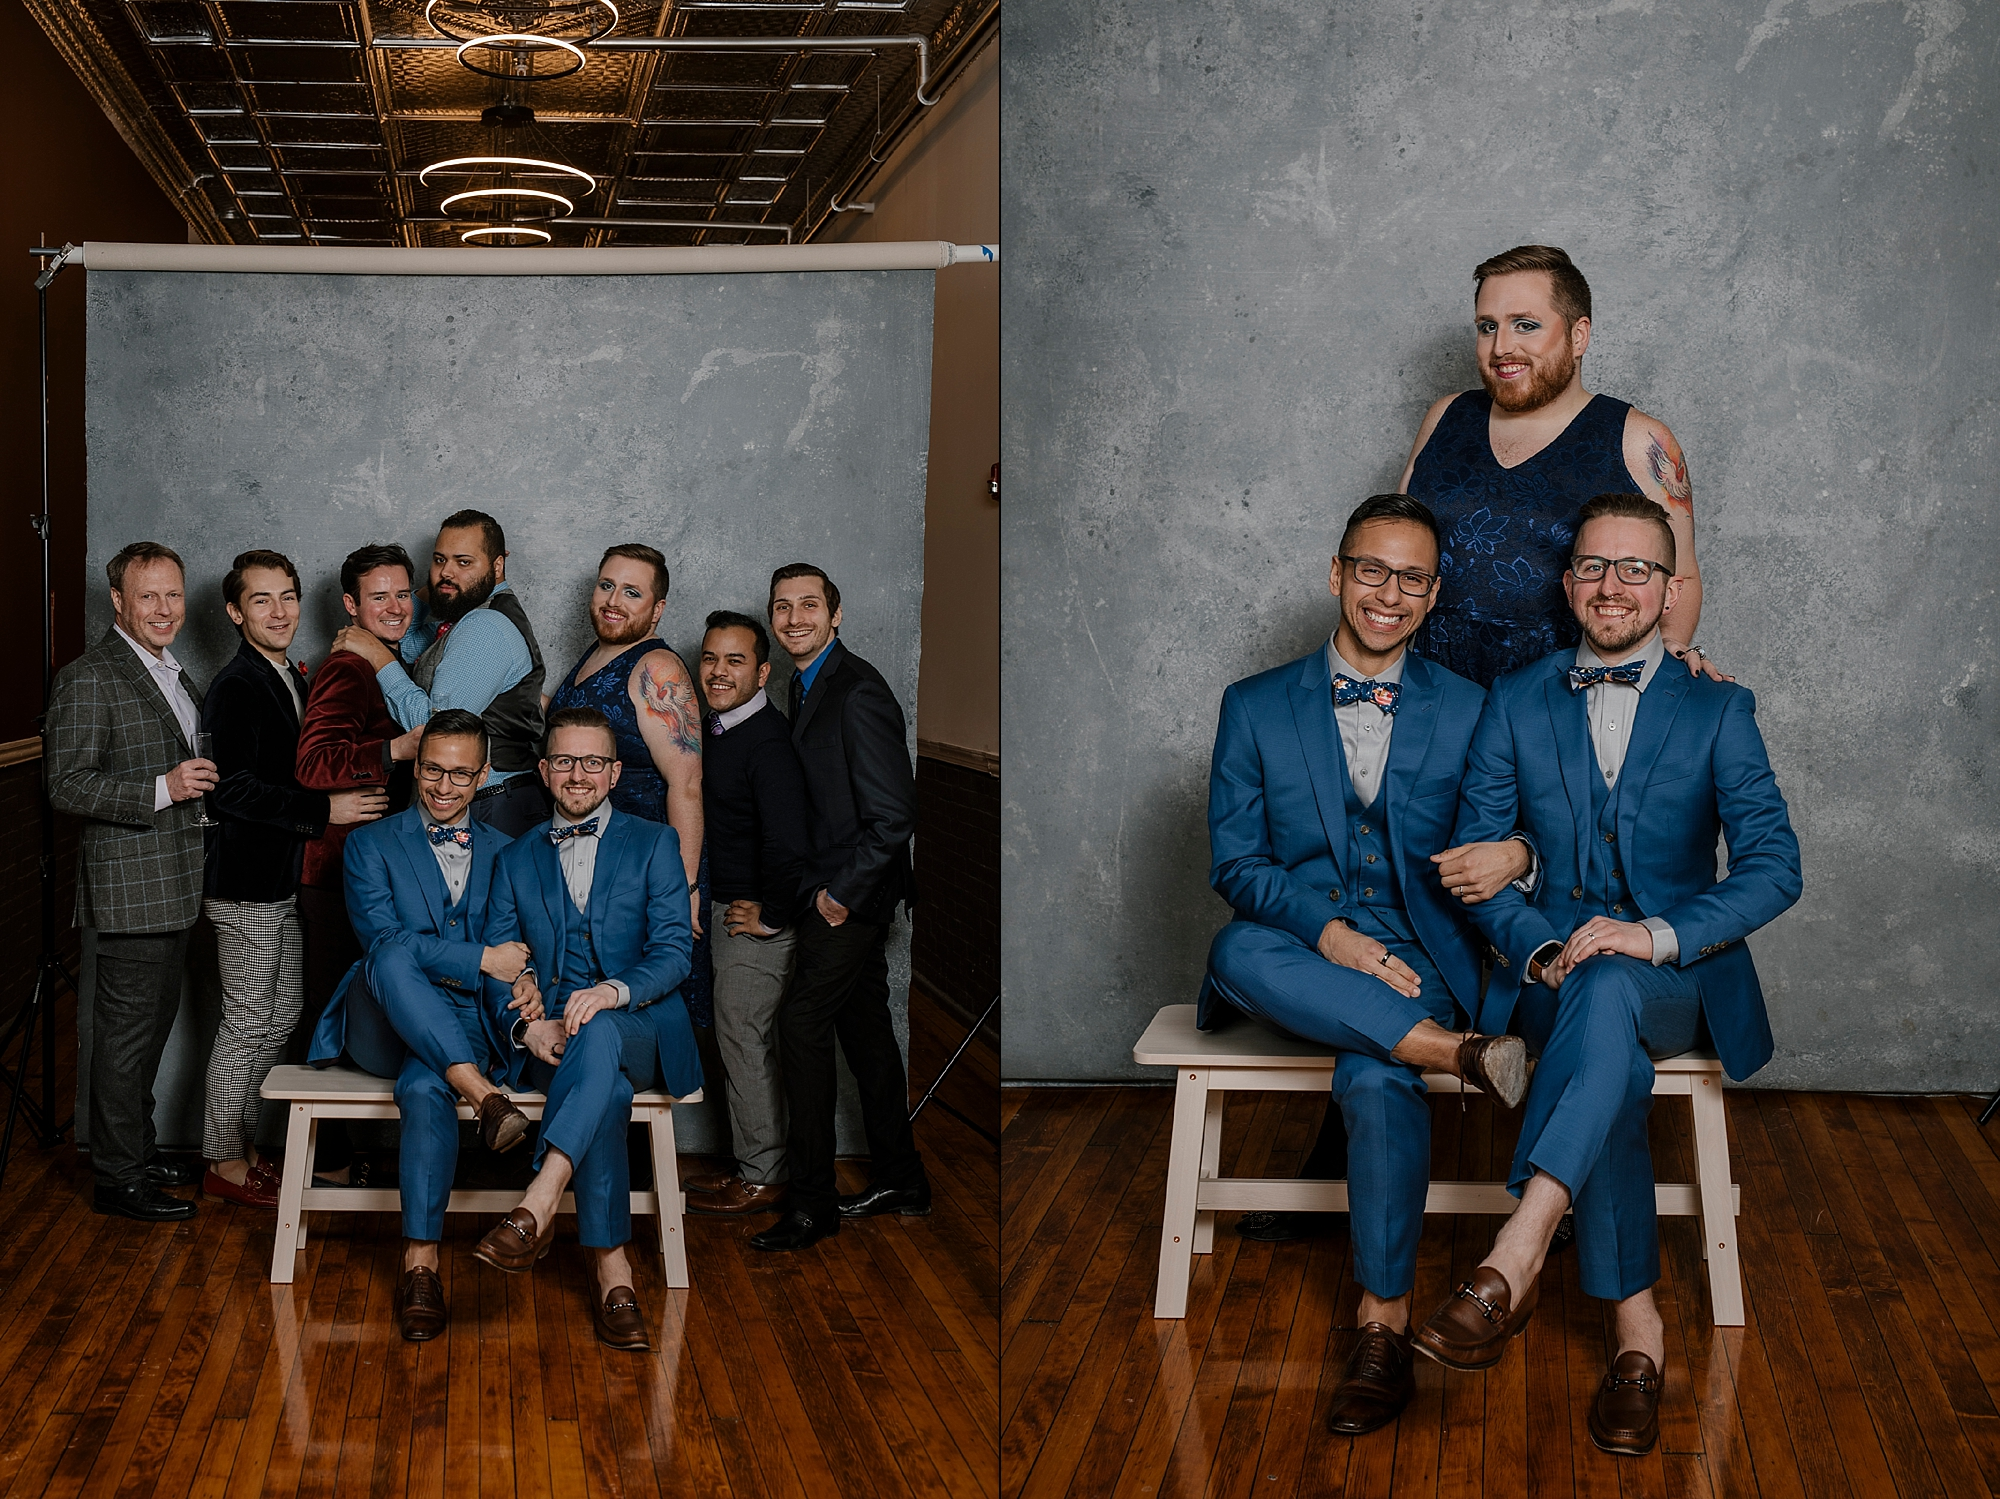 Joe_Mac_Creative_Philadelphia_Philly_LGBT_Gay_Engagement_Wedding_Photography__0100.jpg